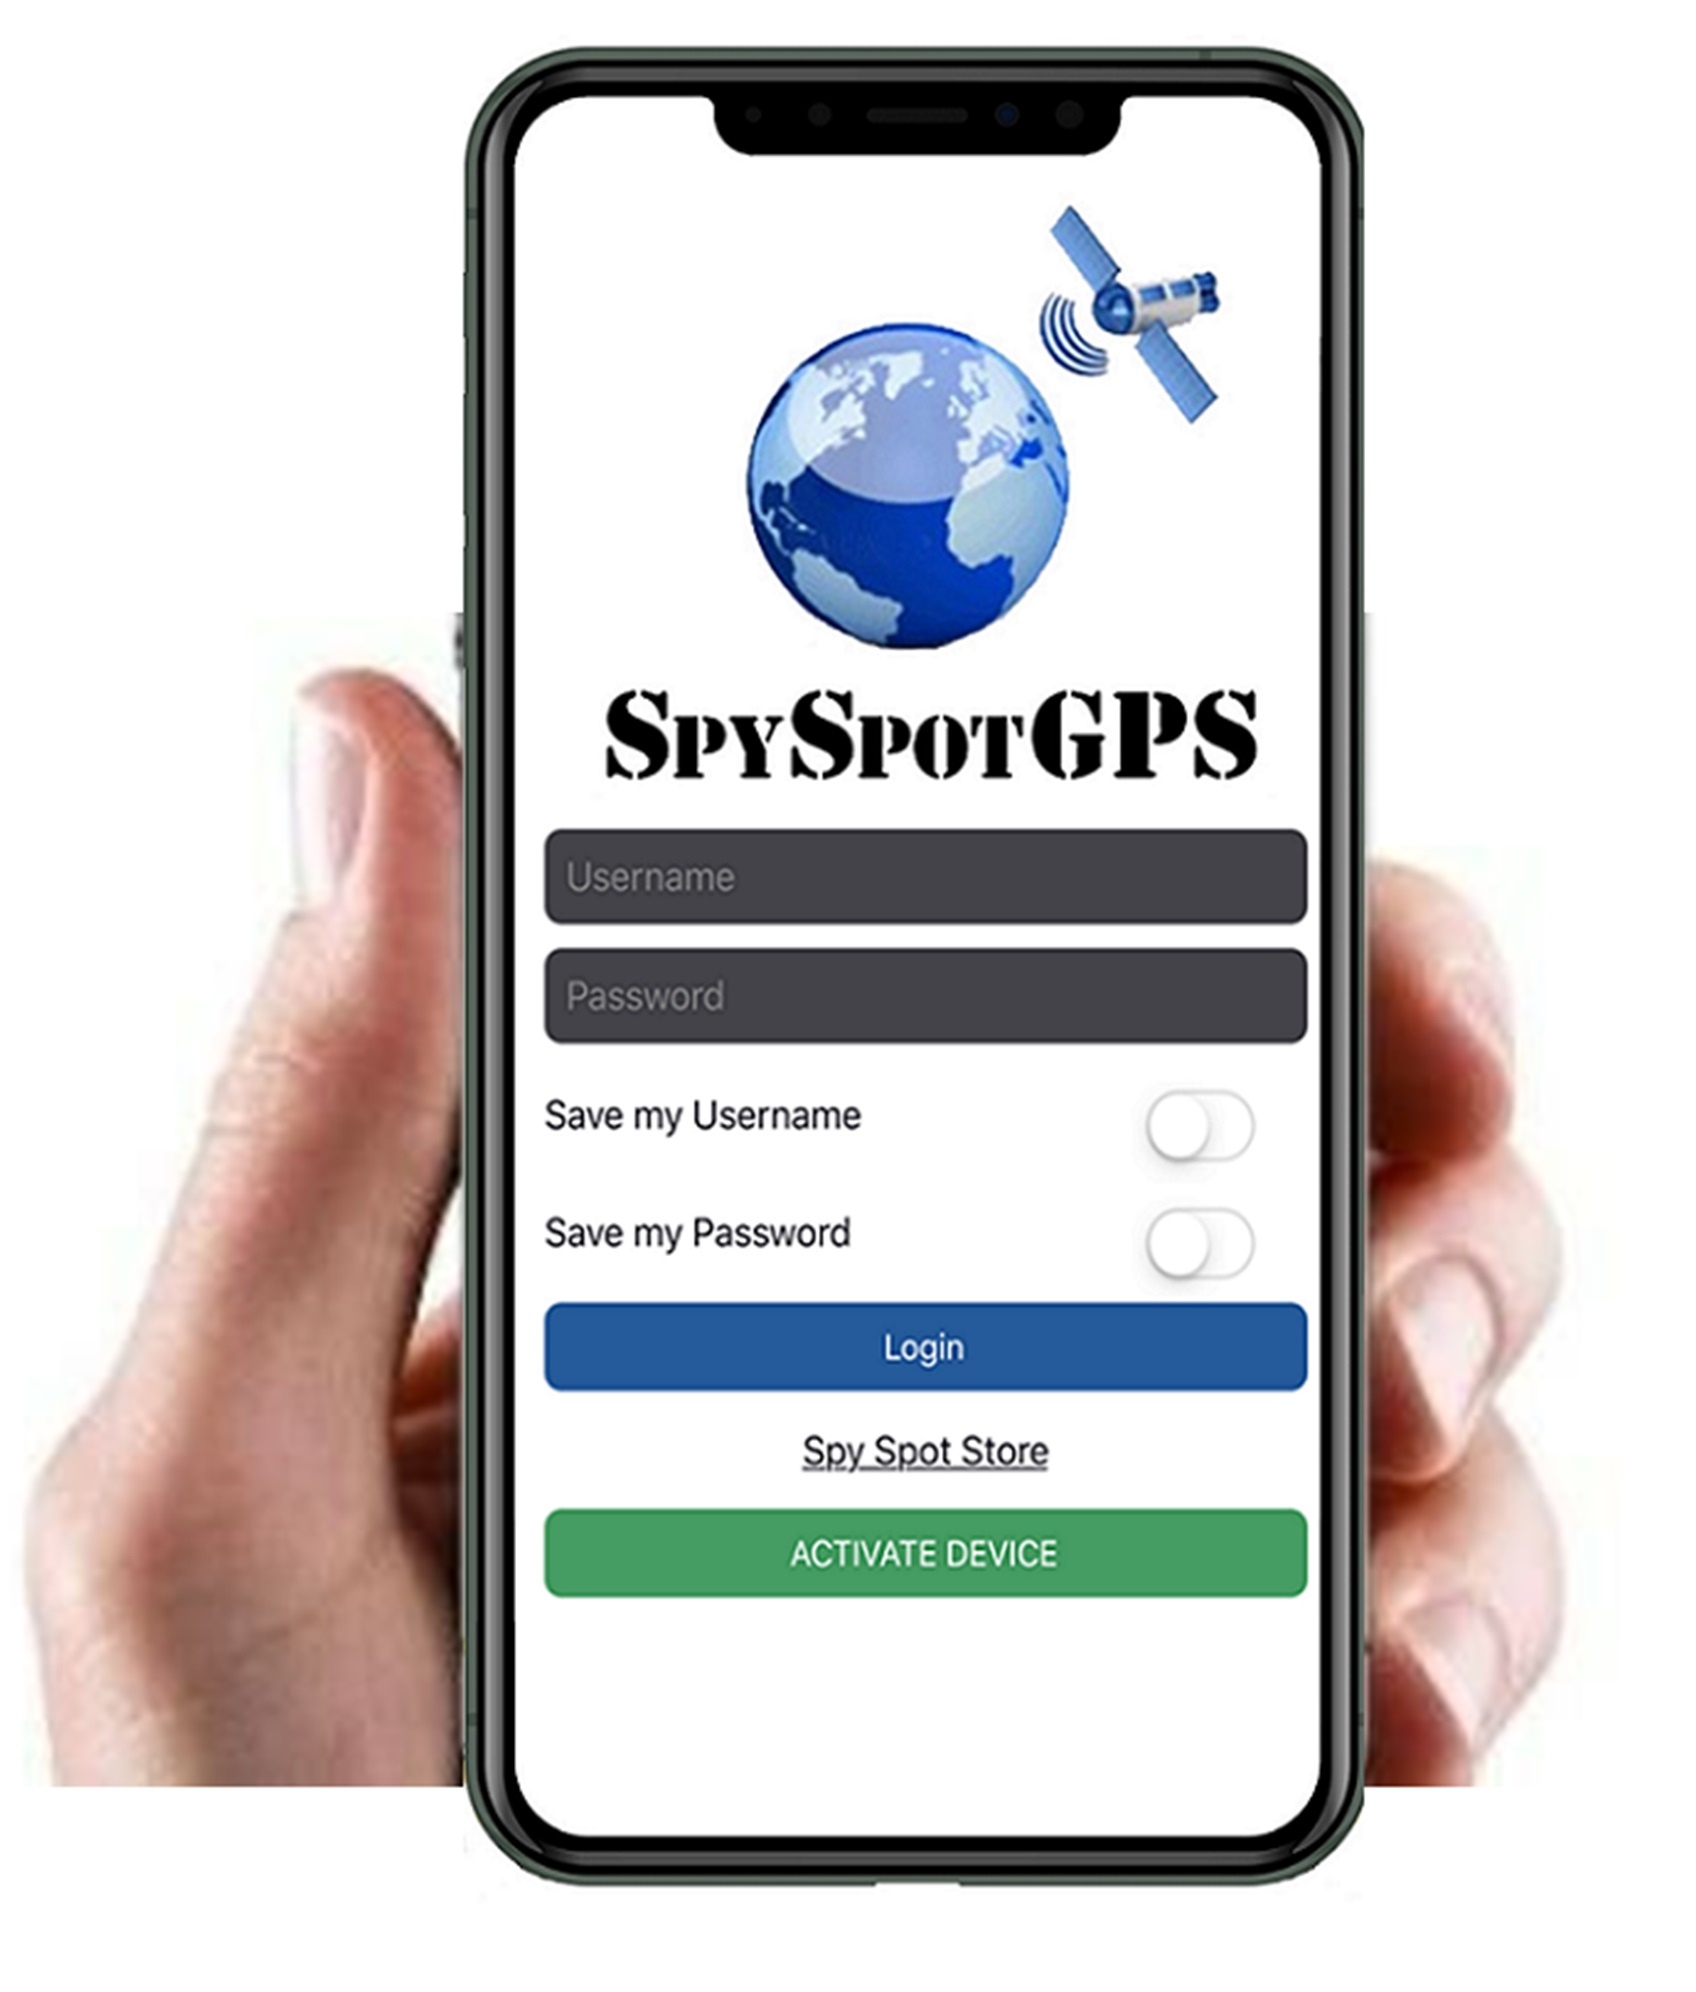 mobiletrackingapp-spyspotgps.jpg